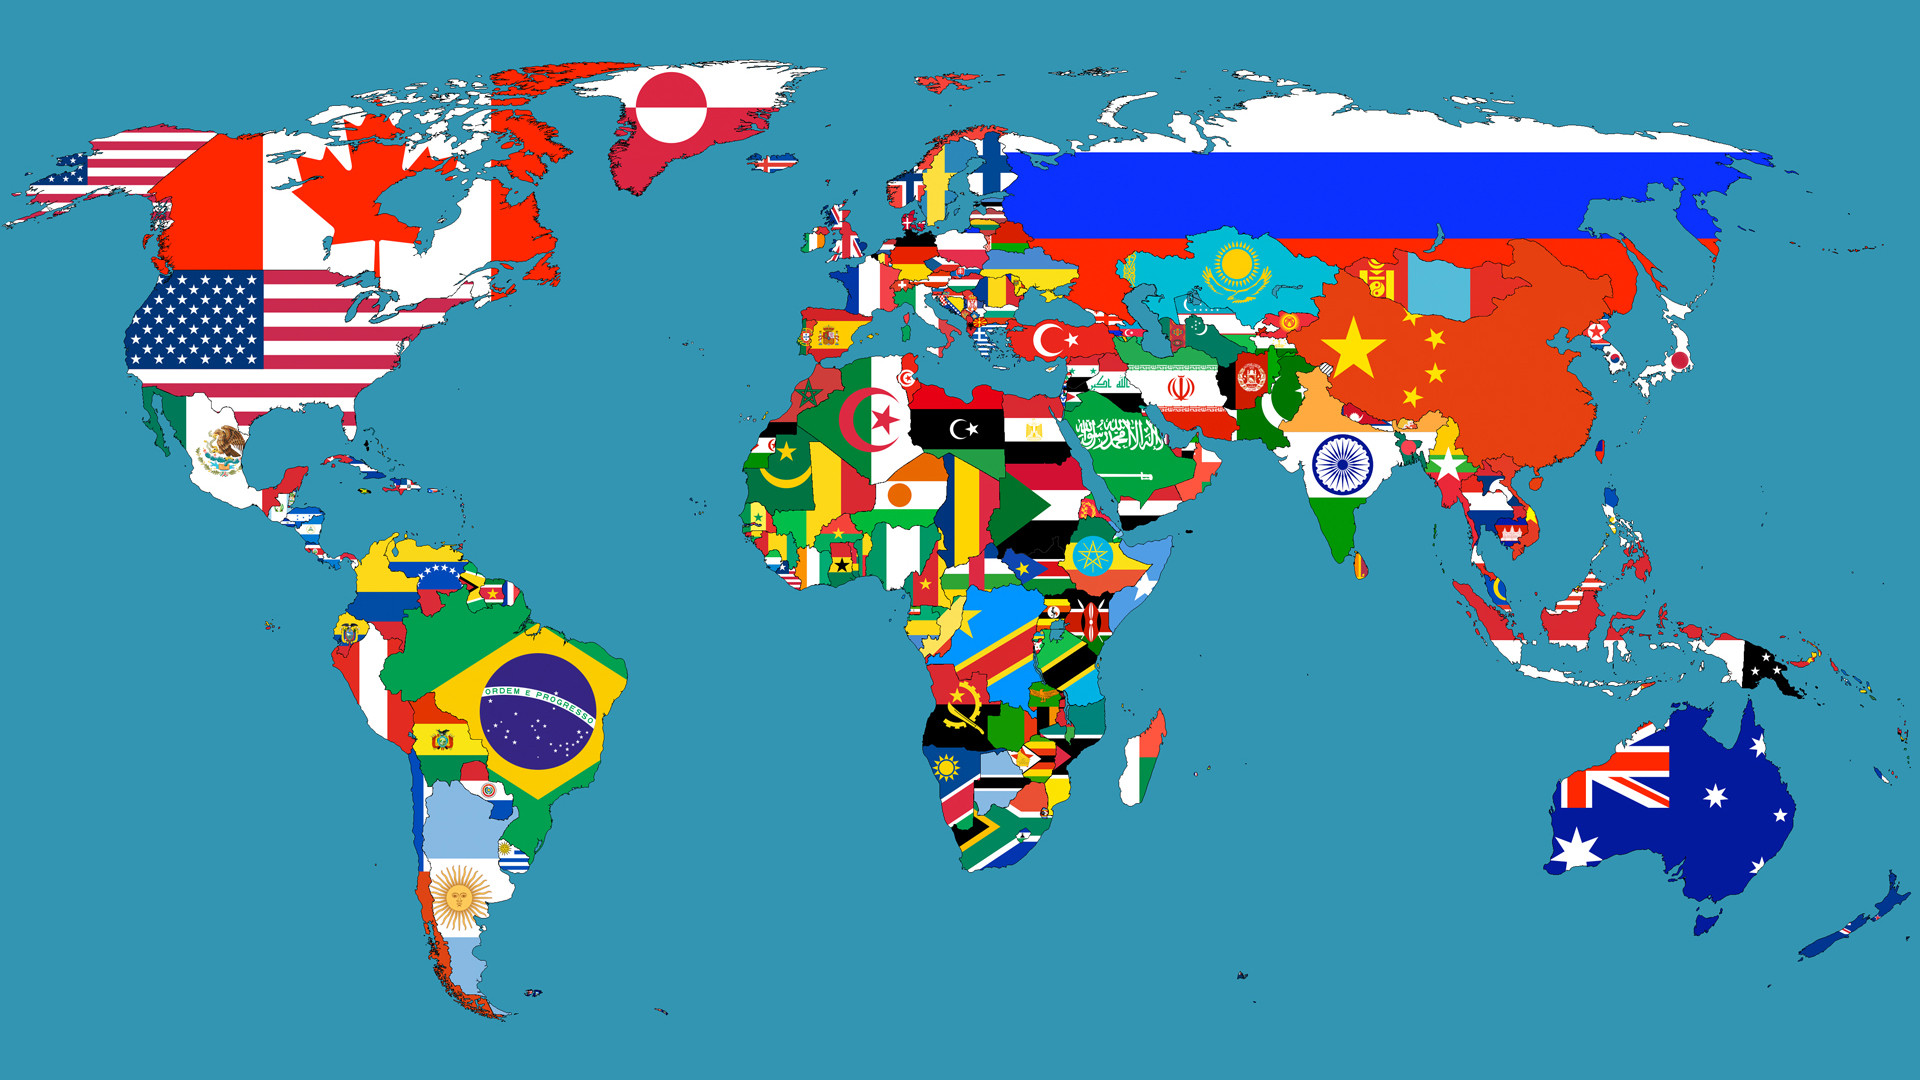 World Map With Flags World map in flags – tHiNk TwIcE World Map With Flags